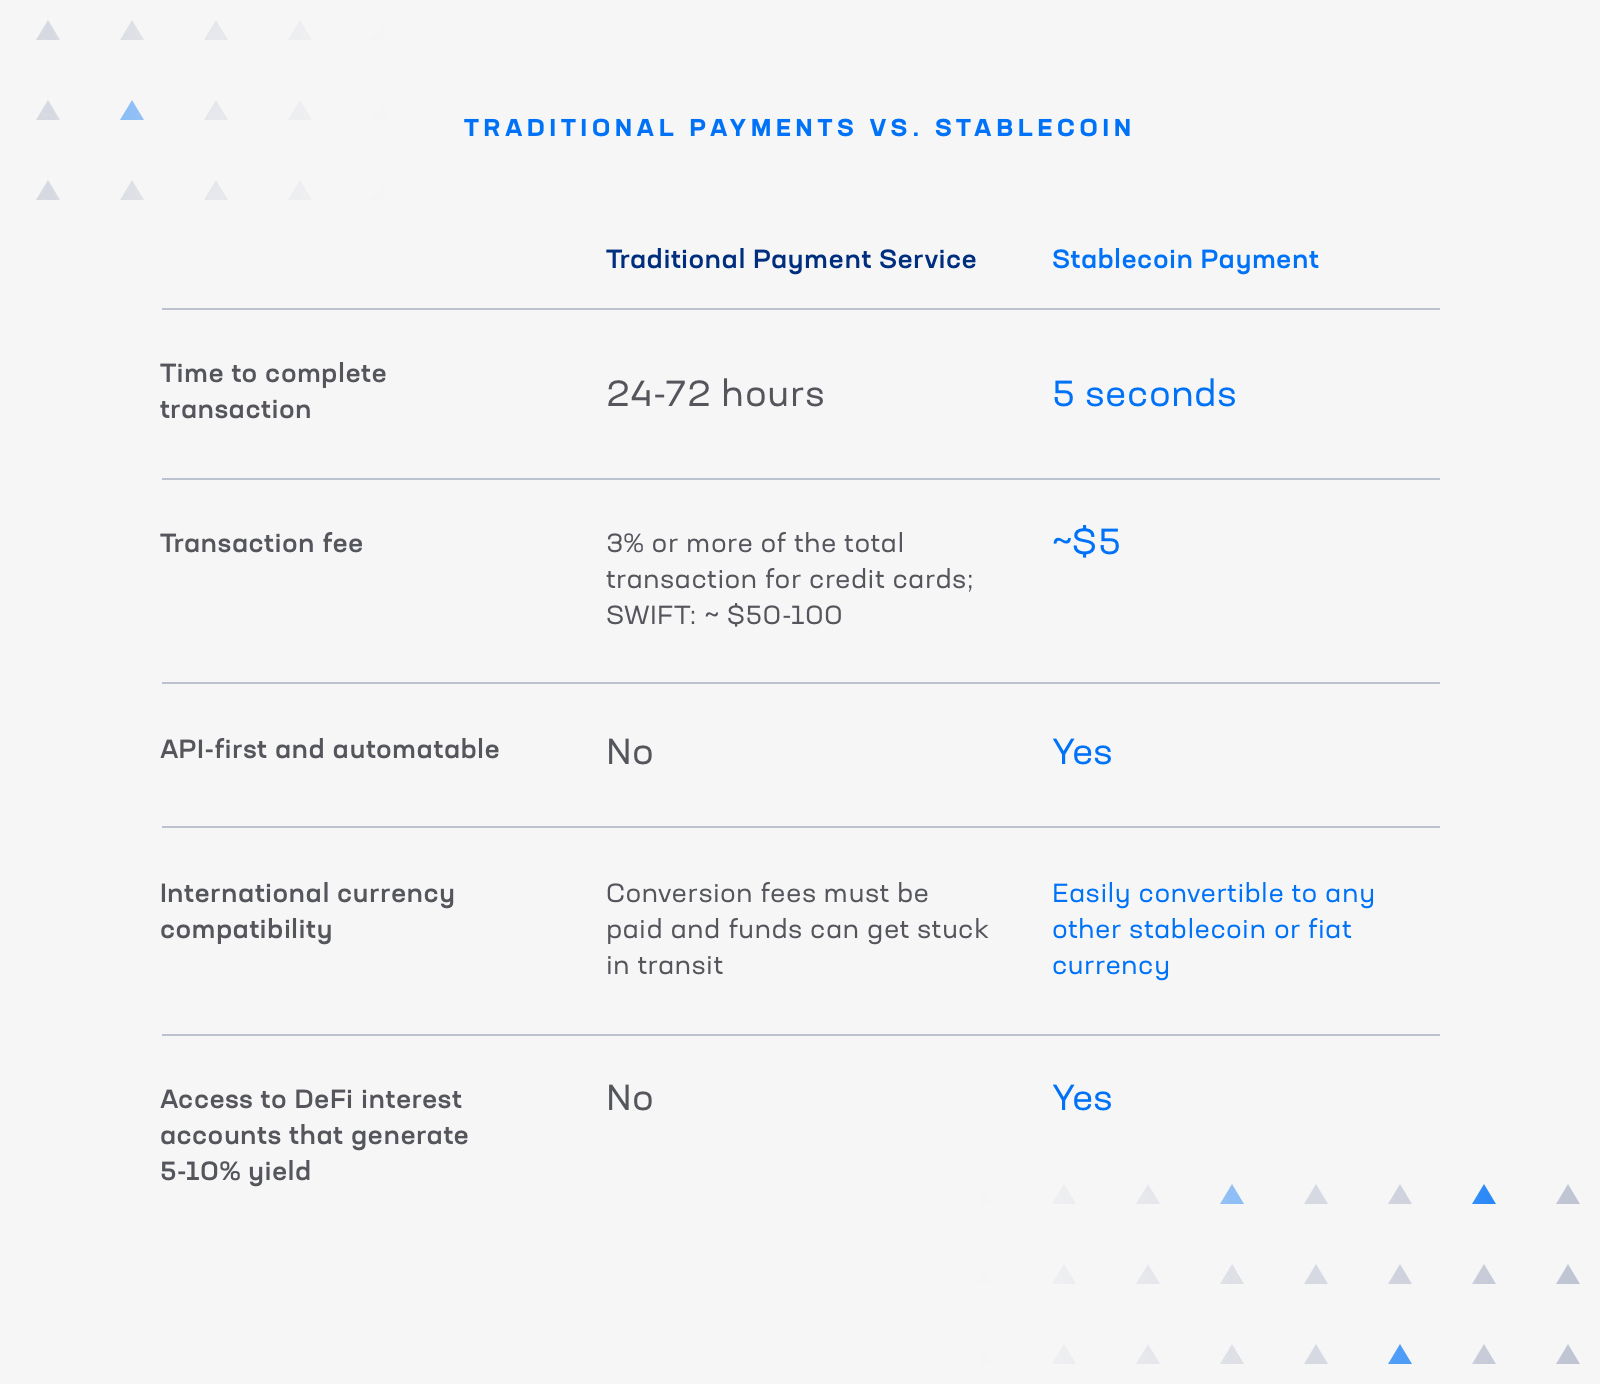 Traditional Payments vs. Stablecoin [INFOGRAPHIC]